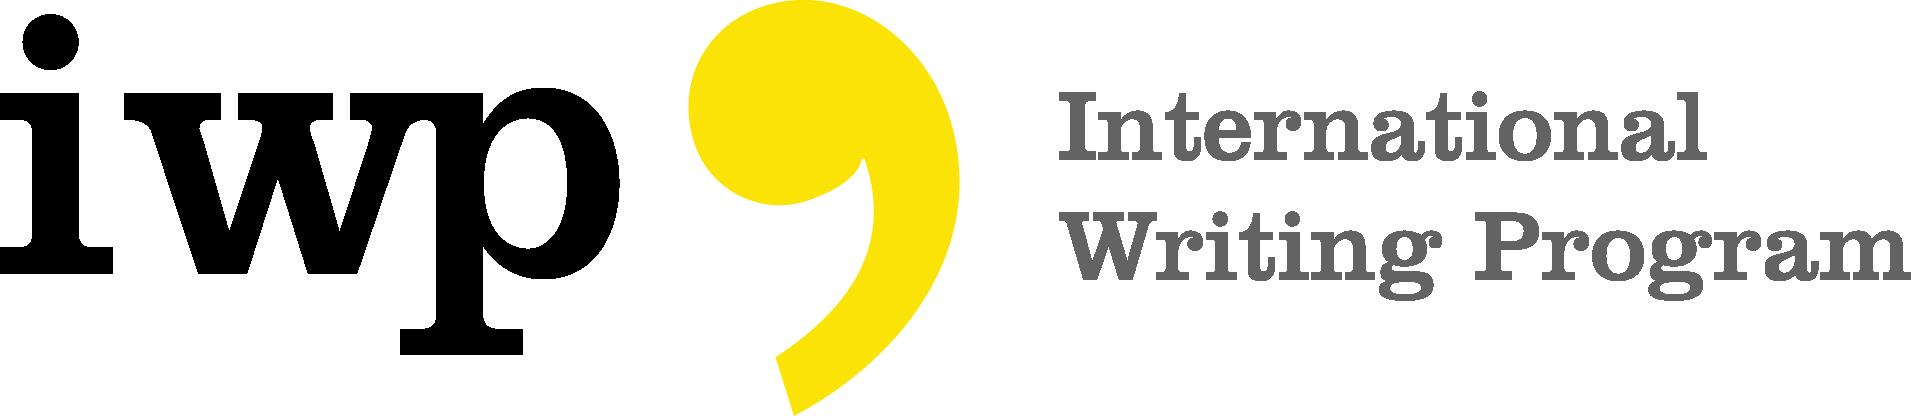 Logo of the International Writing Program at the University of Iowa